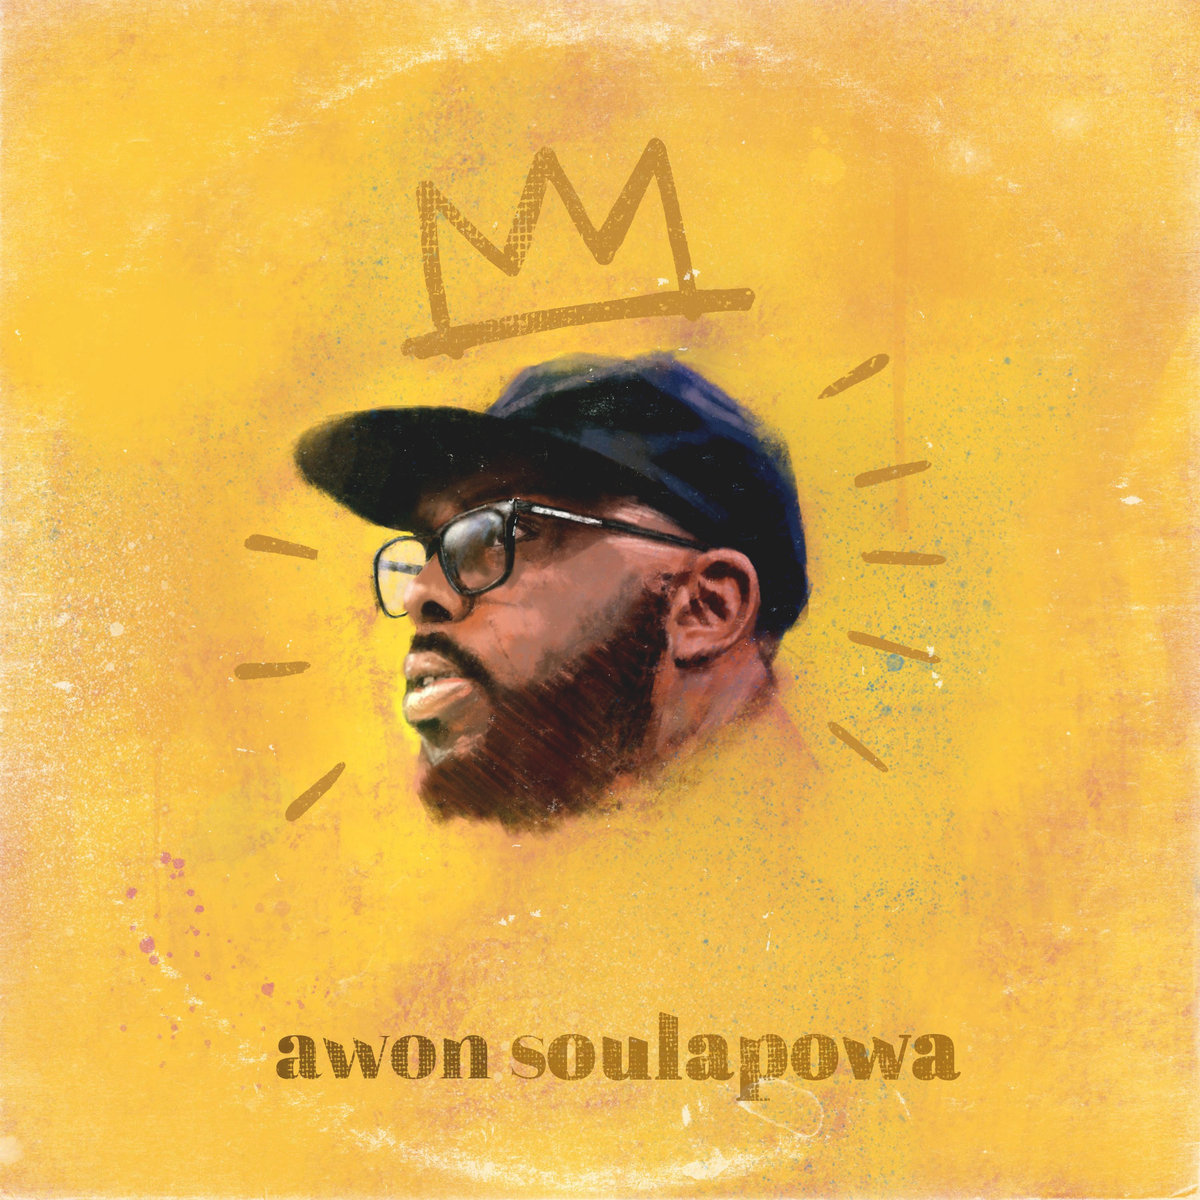 Antwan Wiggins, born March 6, 1980 in Brooklyn, NY, is an American hip hop recording artist based in Newport News, Virginia.[1] He is know by his stage name Awon. In 2014, along with frequent collaborator Phoniks, he founded Don't Sleep Records.[2][3] Awon has shared the stage with many hip-hop acts including Little Brother, Common, EPMD, MC Lyte, and Oddisee.